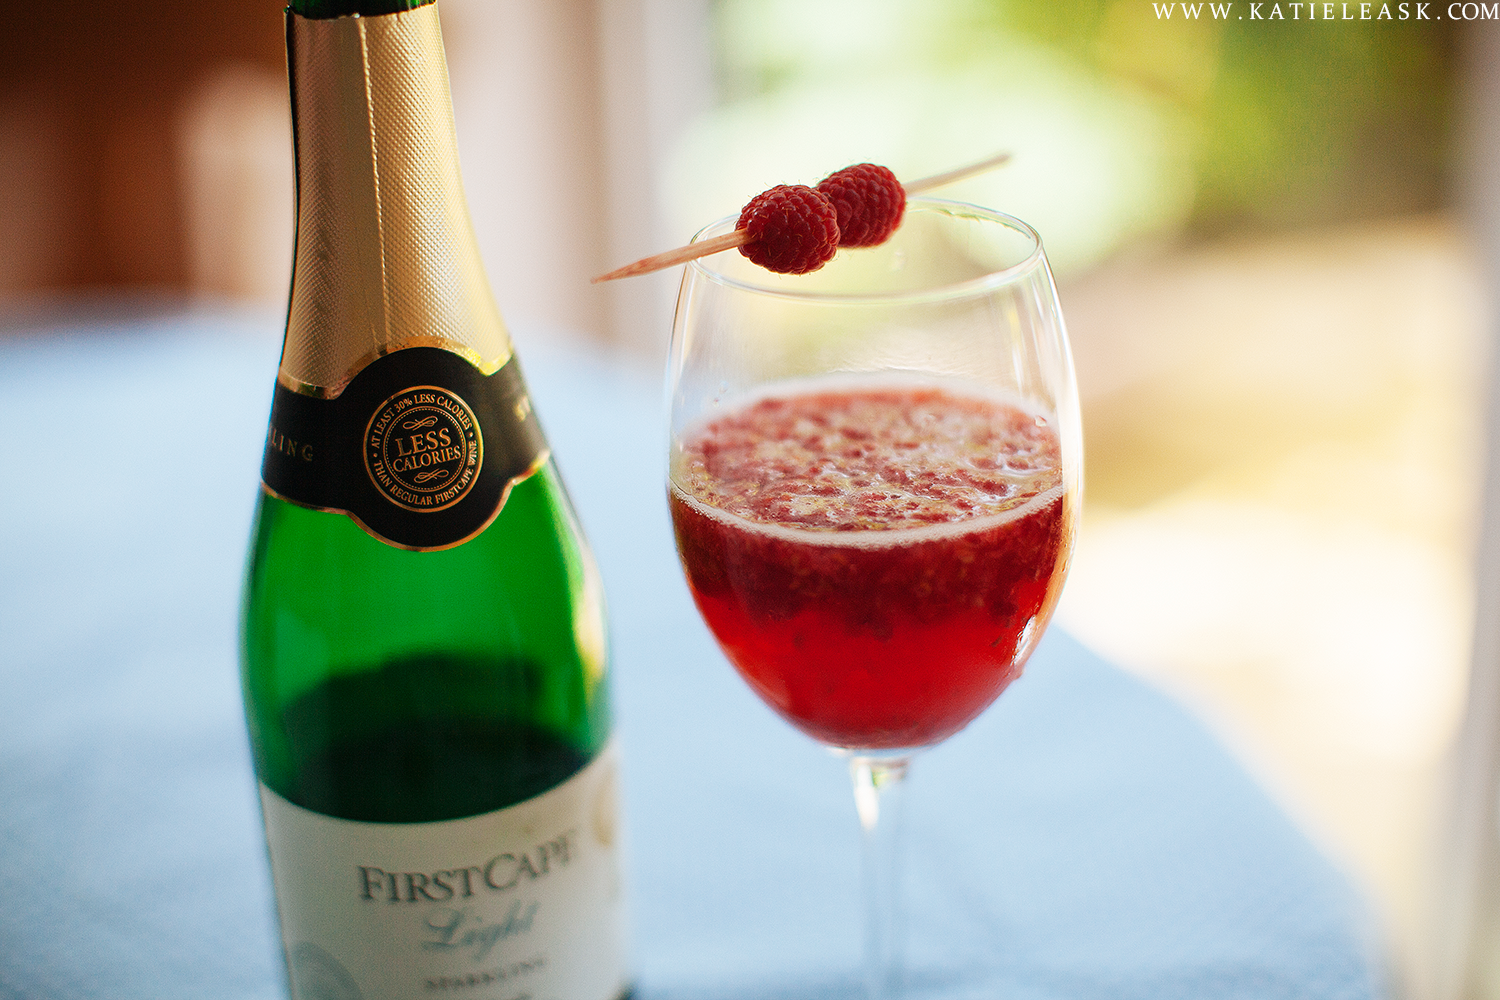 Katie-Leask-Photography-Rasperry-Champagne-Cocktail-003-s-